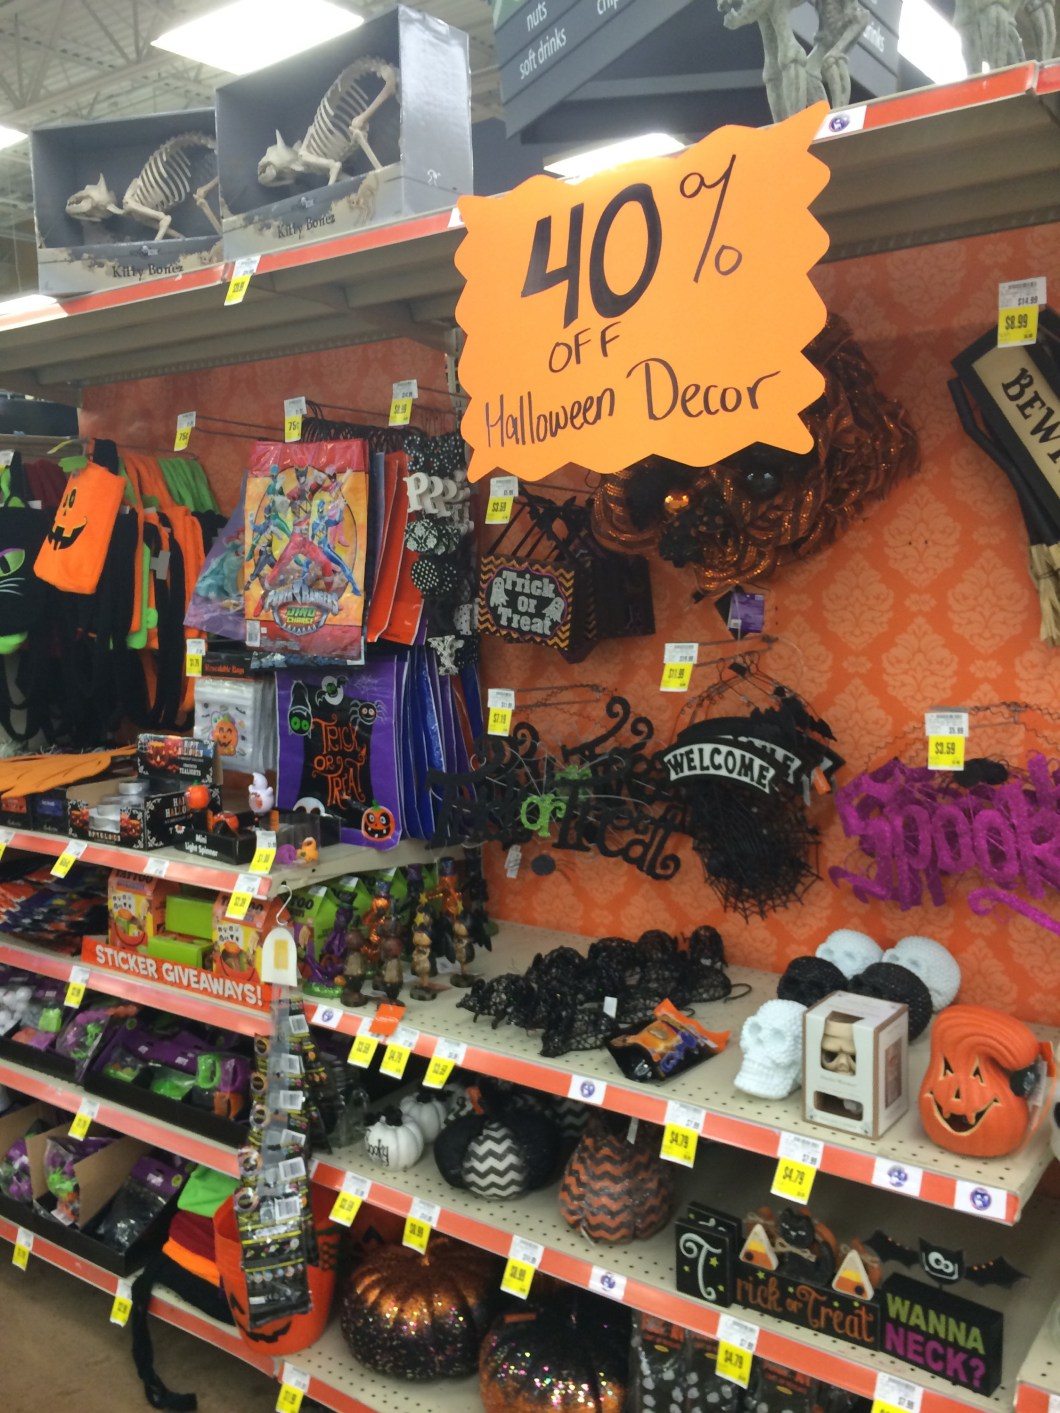 kroger halloween decor 2018 cartooncreative co